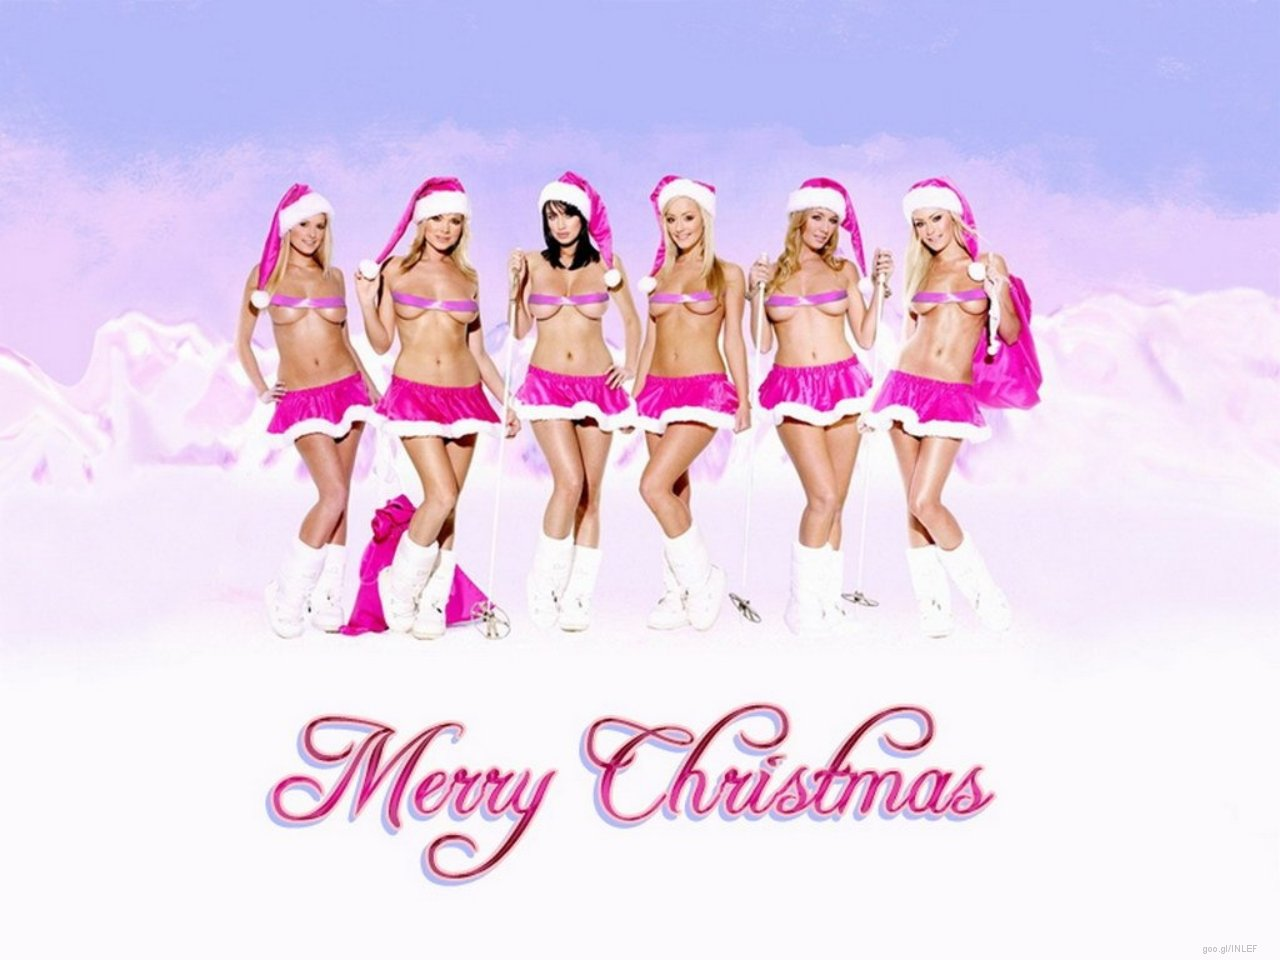 [Immagine: natale%2Bwallpaper%2Bsexy%2B3.jpg]